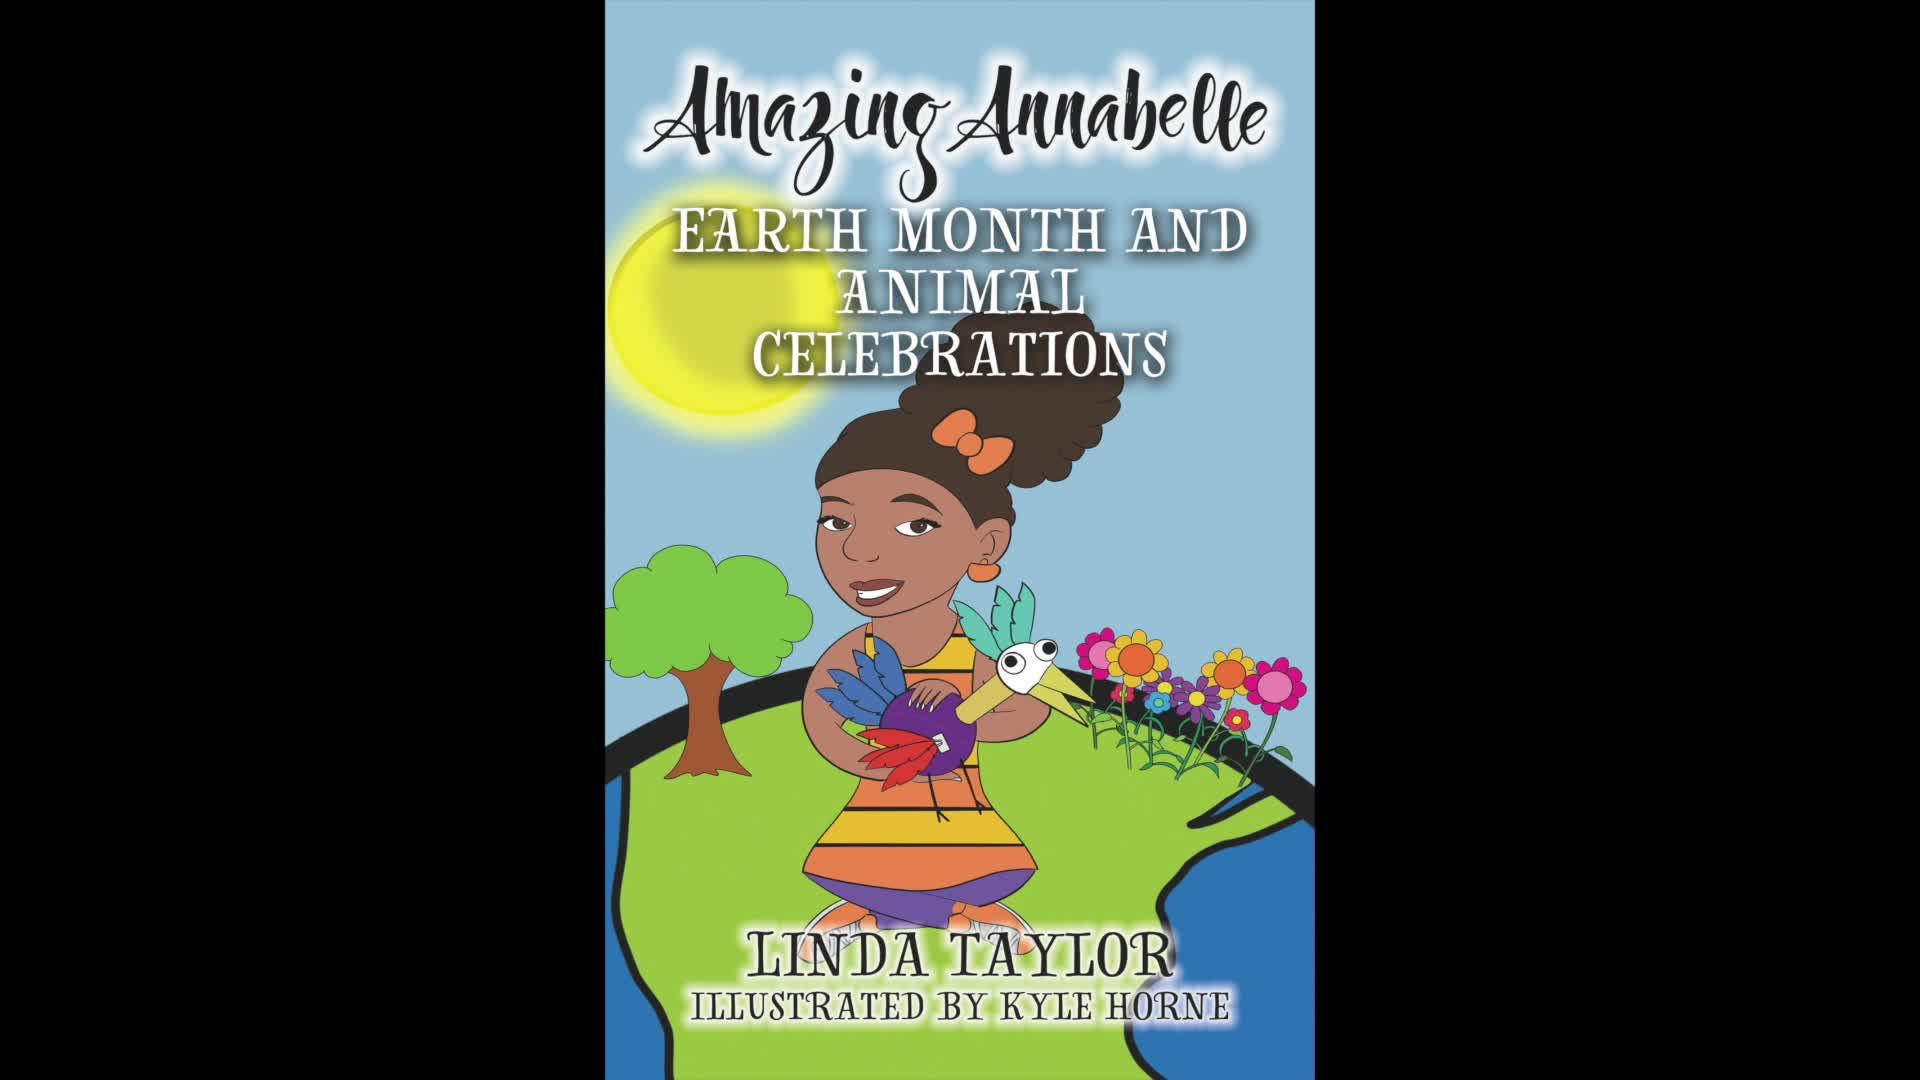 Amazing Annabelle Earth Month And Animal Celebrations Chapter 1